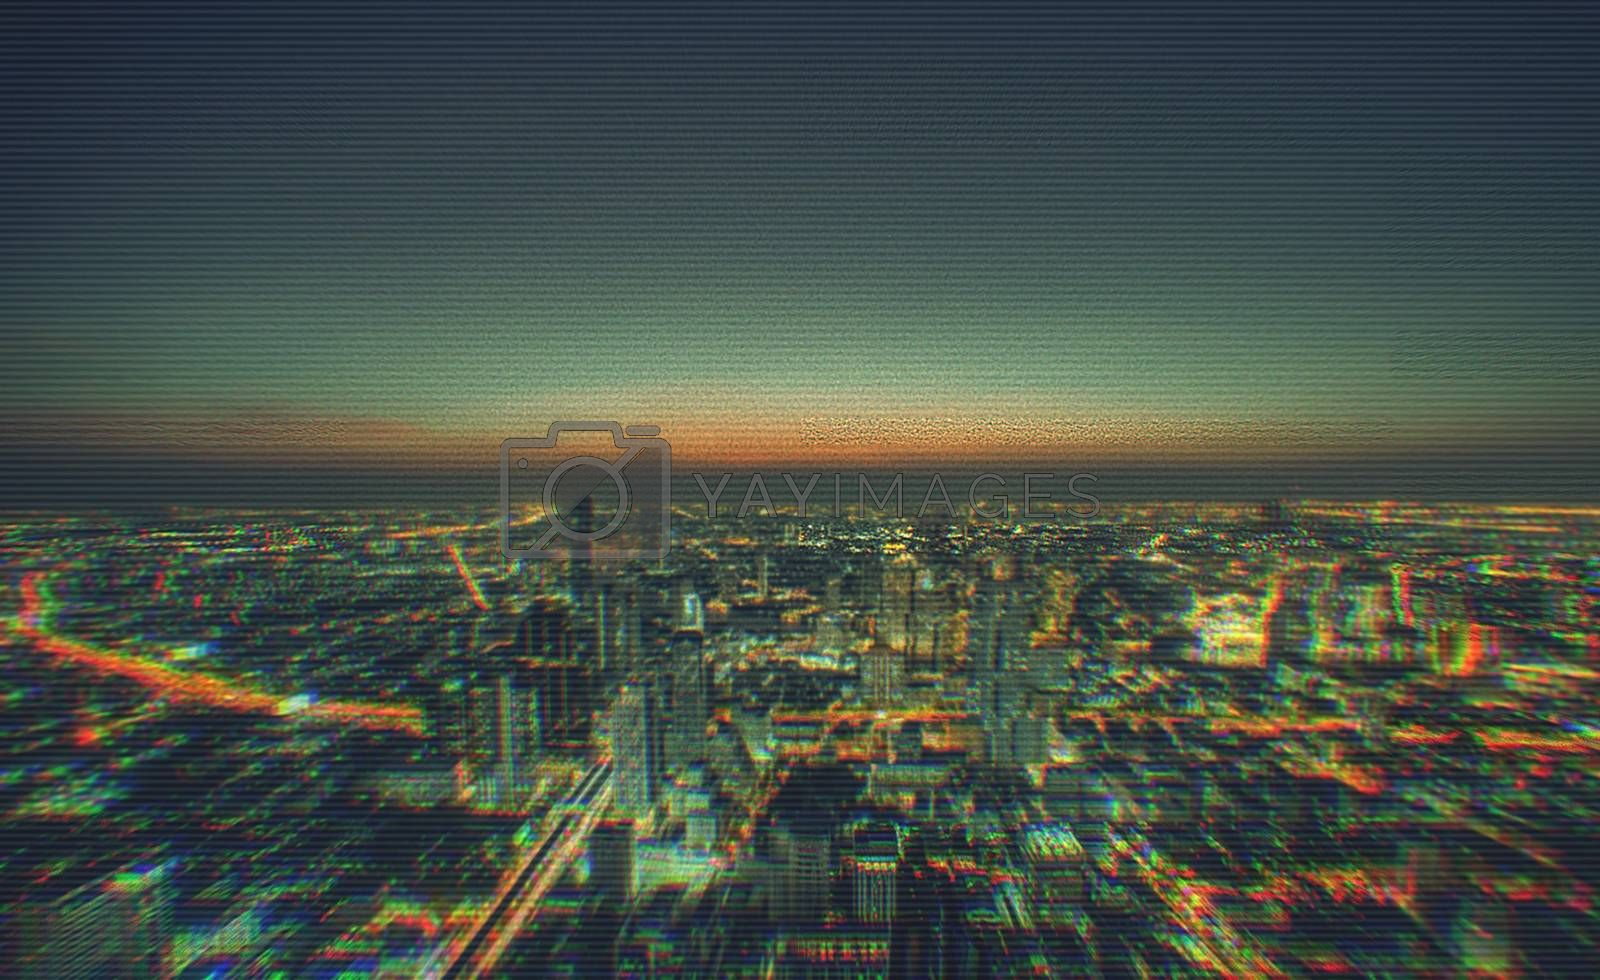 Cityscape of modern buildings in the city night background with digital glitch effect